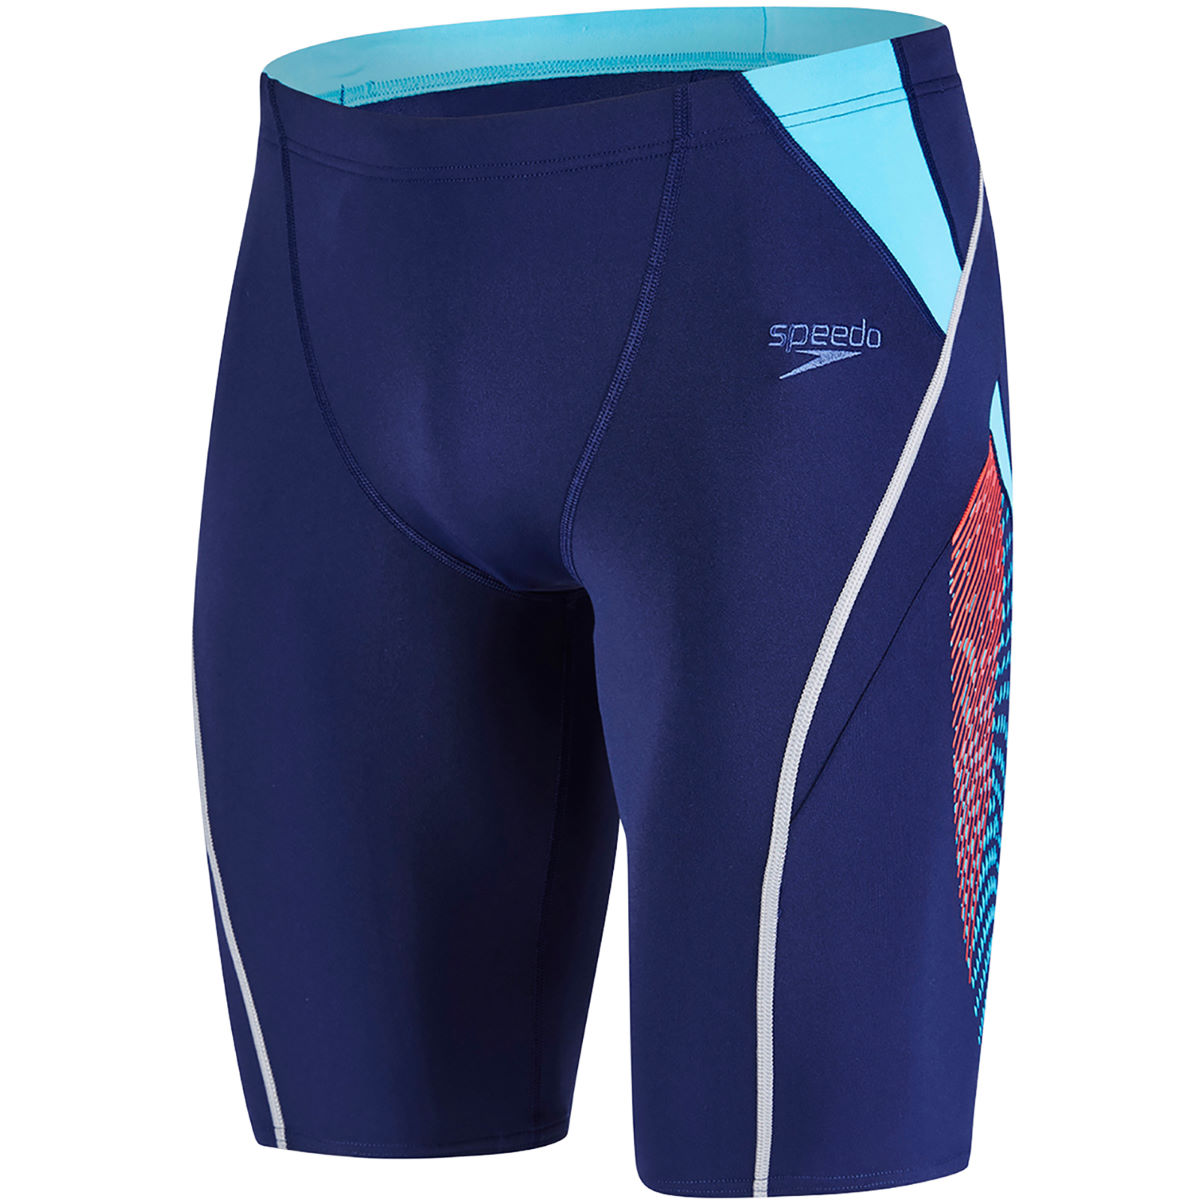 Jammer Speedo Fit Splice - 40 Navy/Lava Red Maillots de bain Adulte